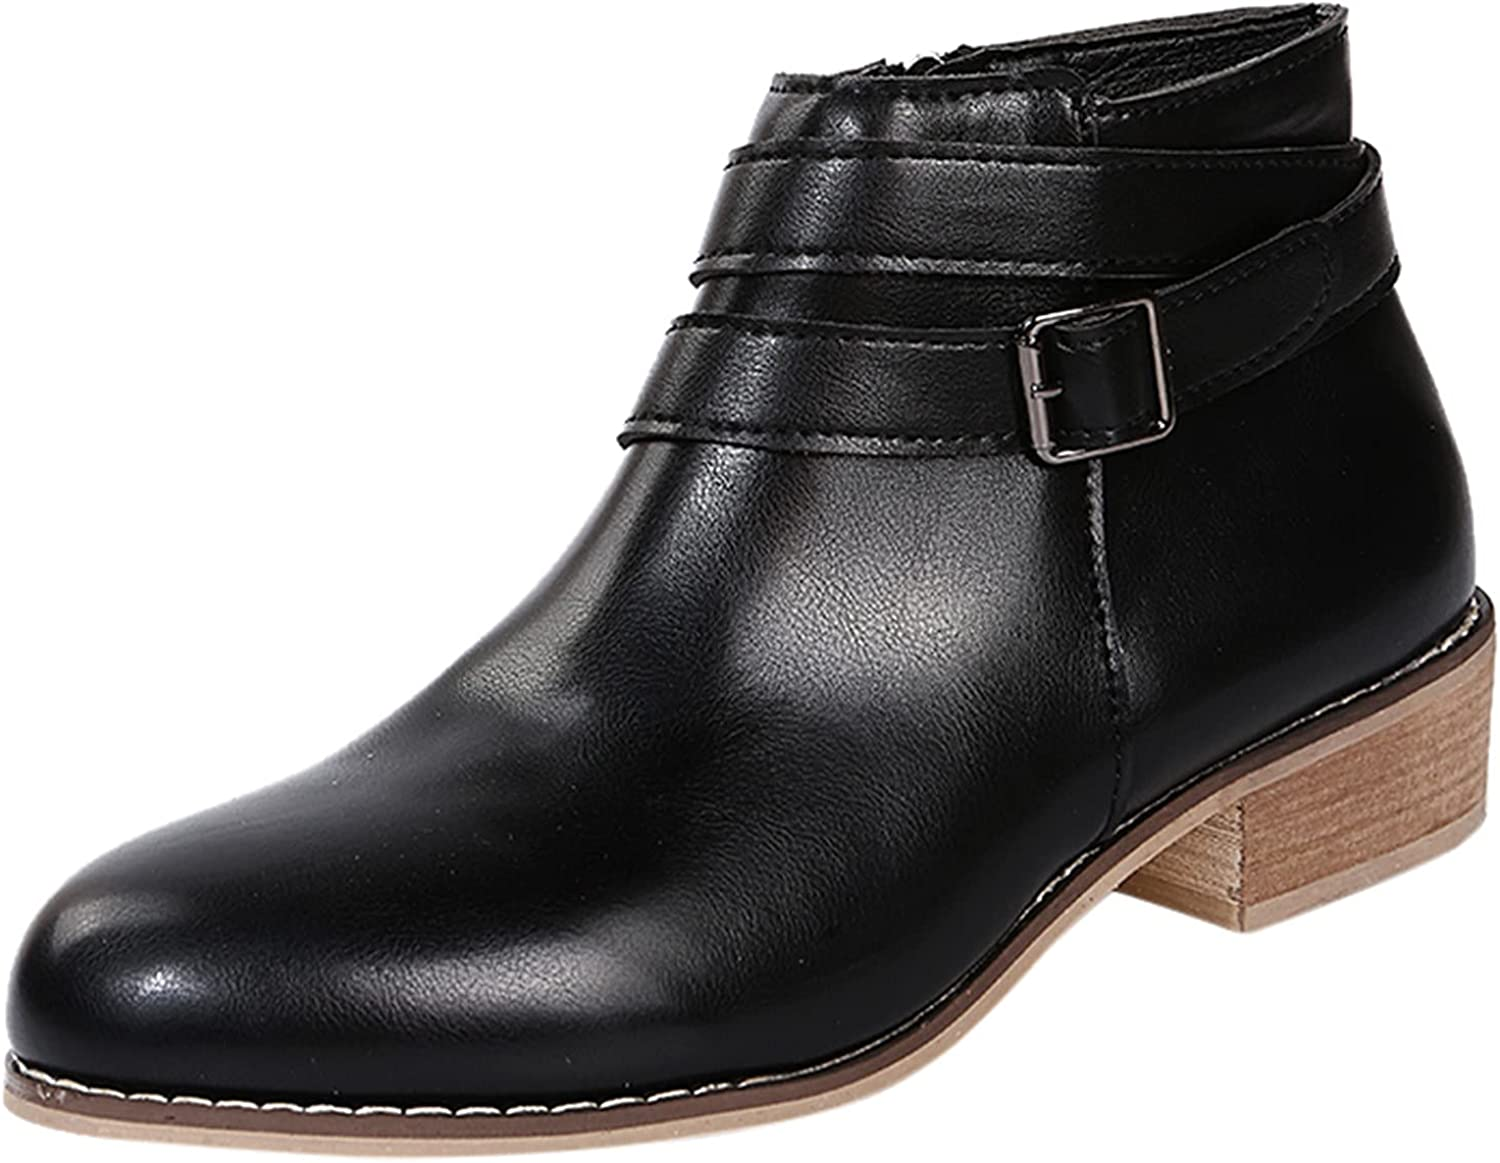 Women's Ankle Boots Non-Slip Solid Color Square Heels Zipper Round Toe Short Booties Shoes